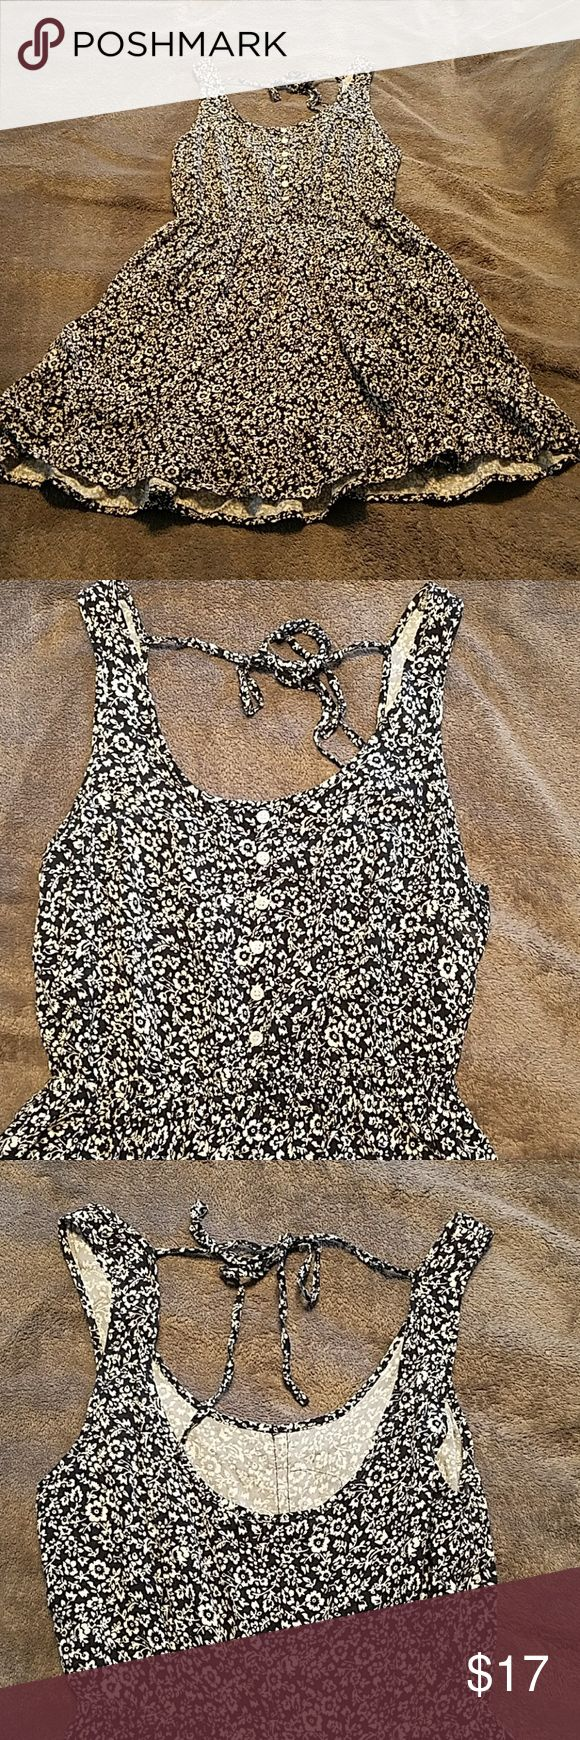 Black and white floral pattern festival dress Adorable summer dress! Scoop back with a tie at the top. Size xs. Very comfortable and light. Perfect for summer and festival season ! Brand is Lorimer NYC. Fp listed for exposure. Free People Dresses Mini